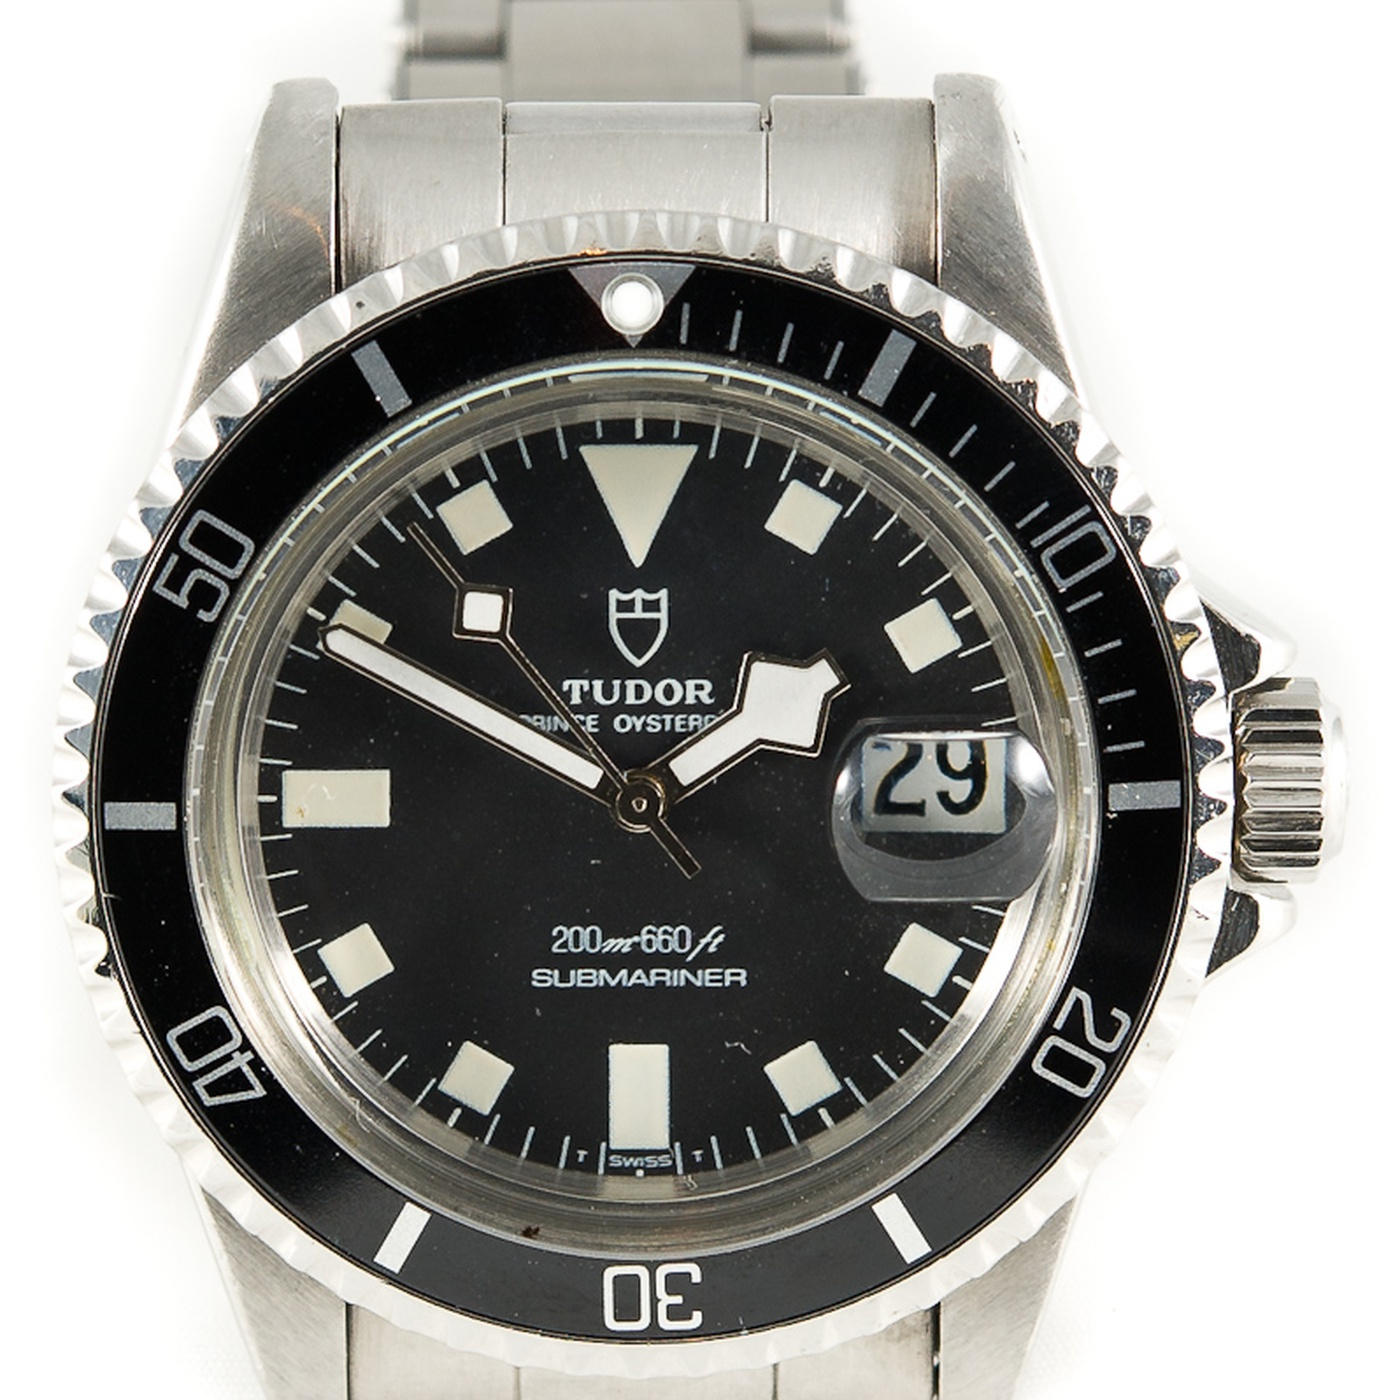 Early 1970's Tudor Submariner nyc